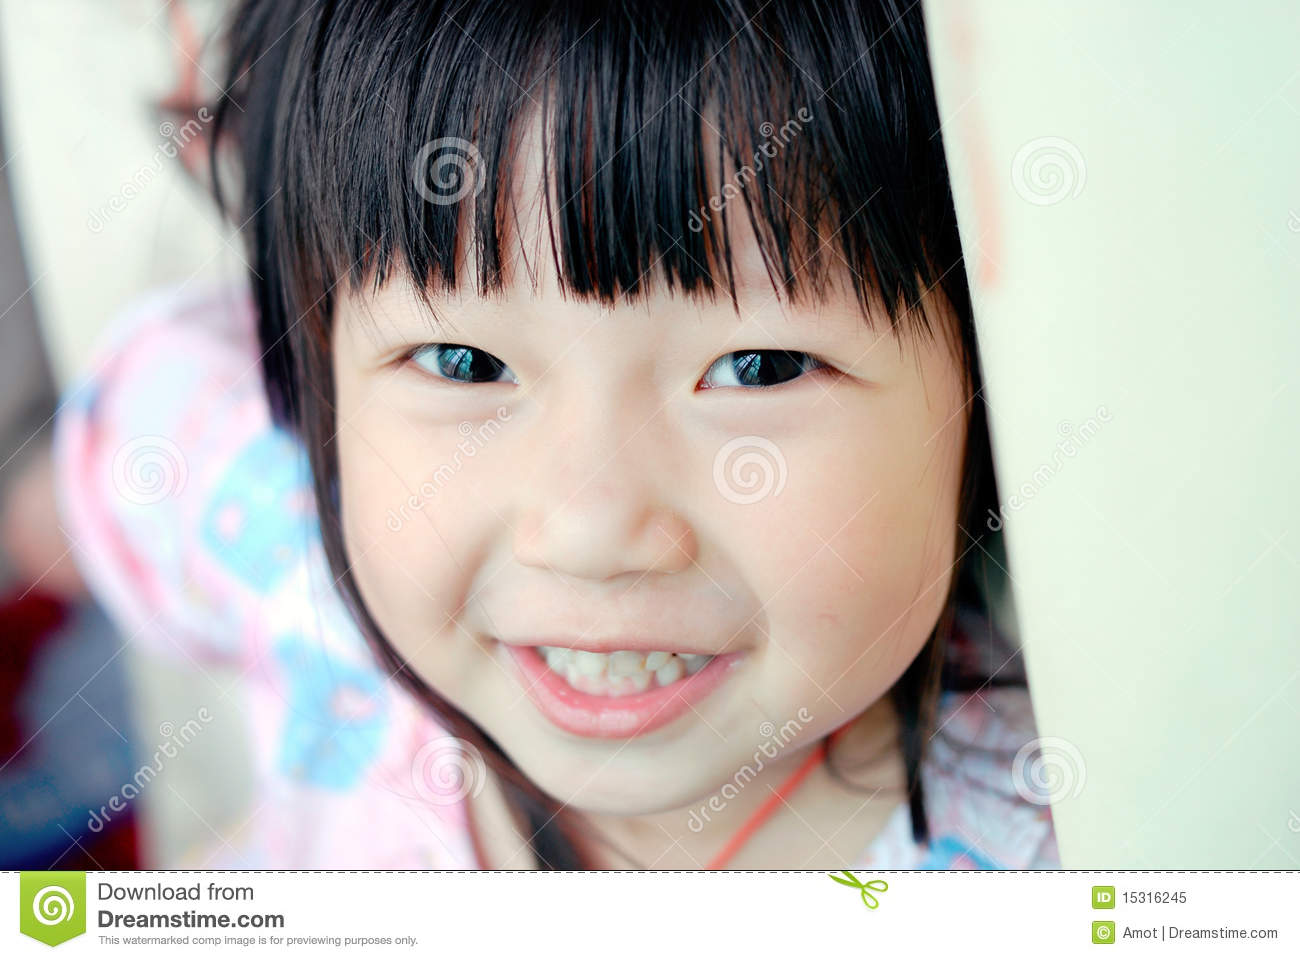 Chinese Beautiful Girl Wallpaper Awesome Asian Child Smile Stock Image Image Of Girl Baby China